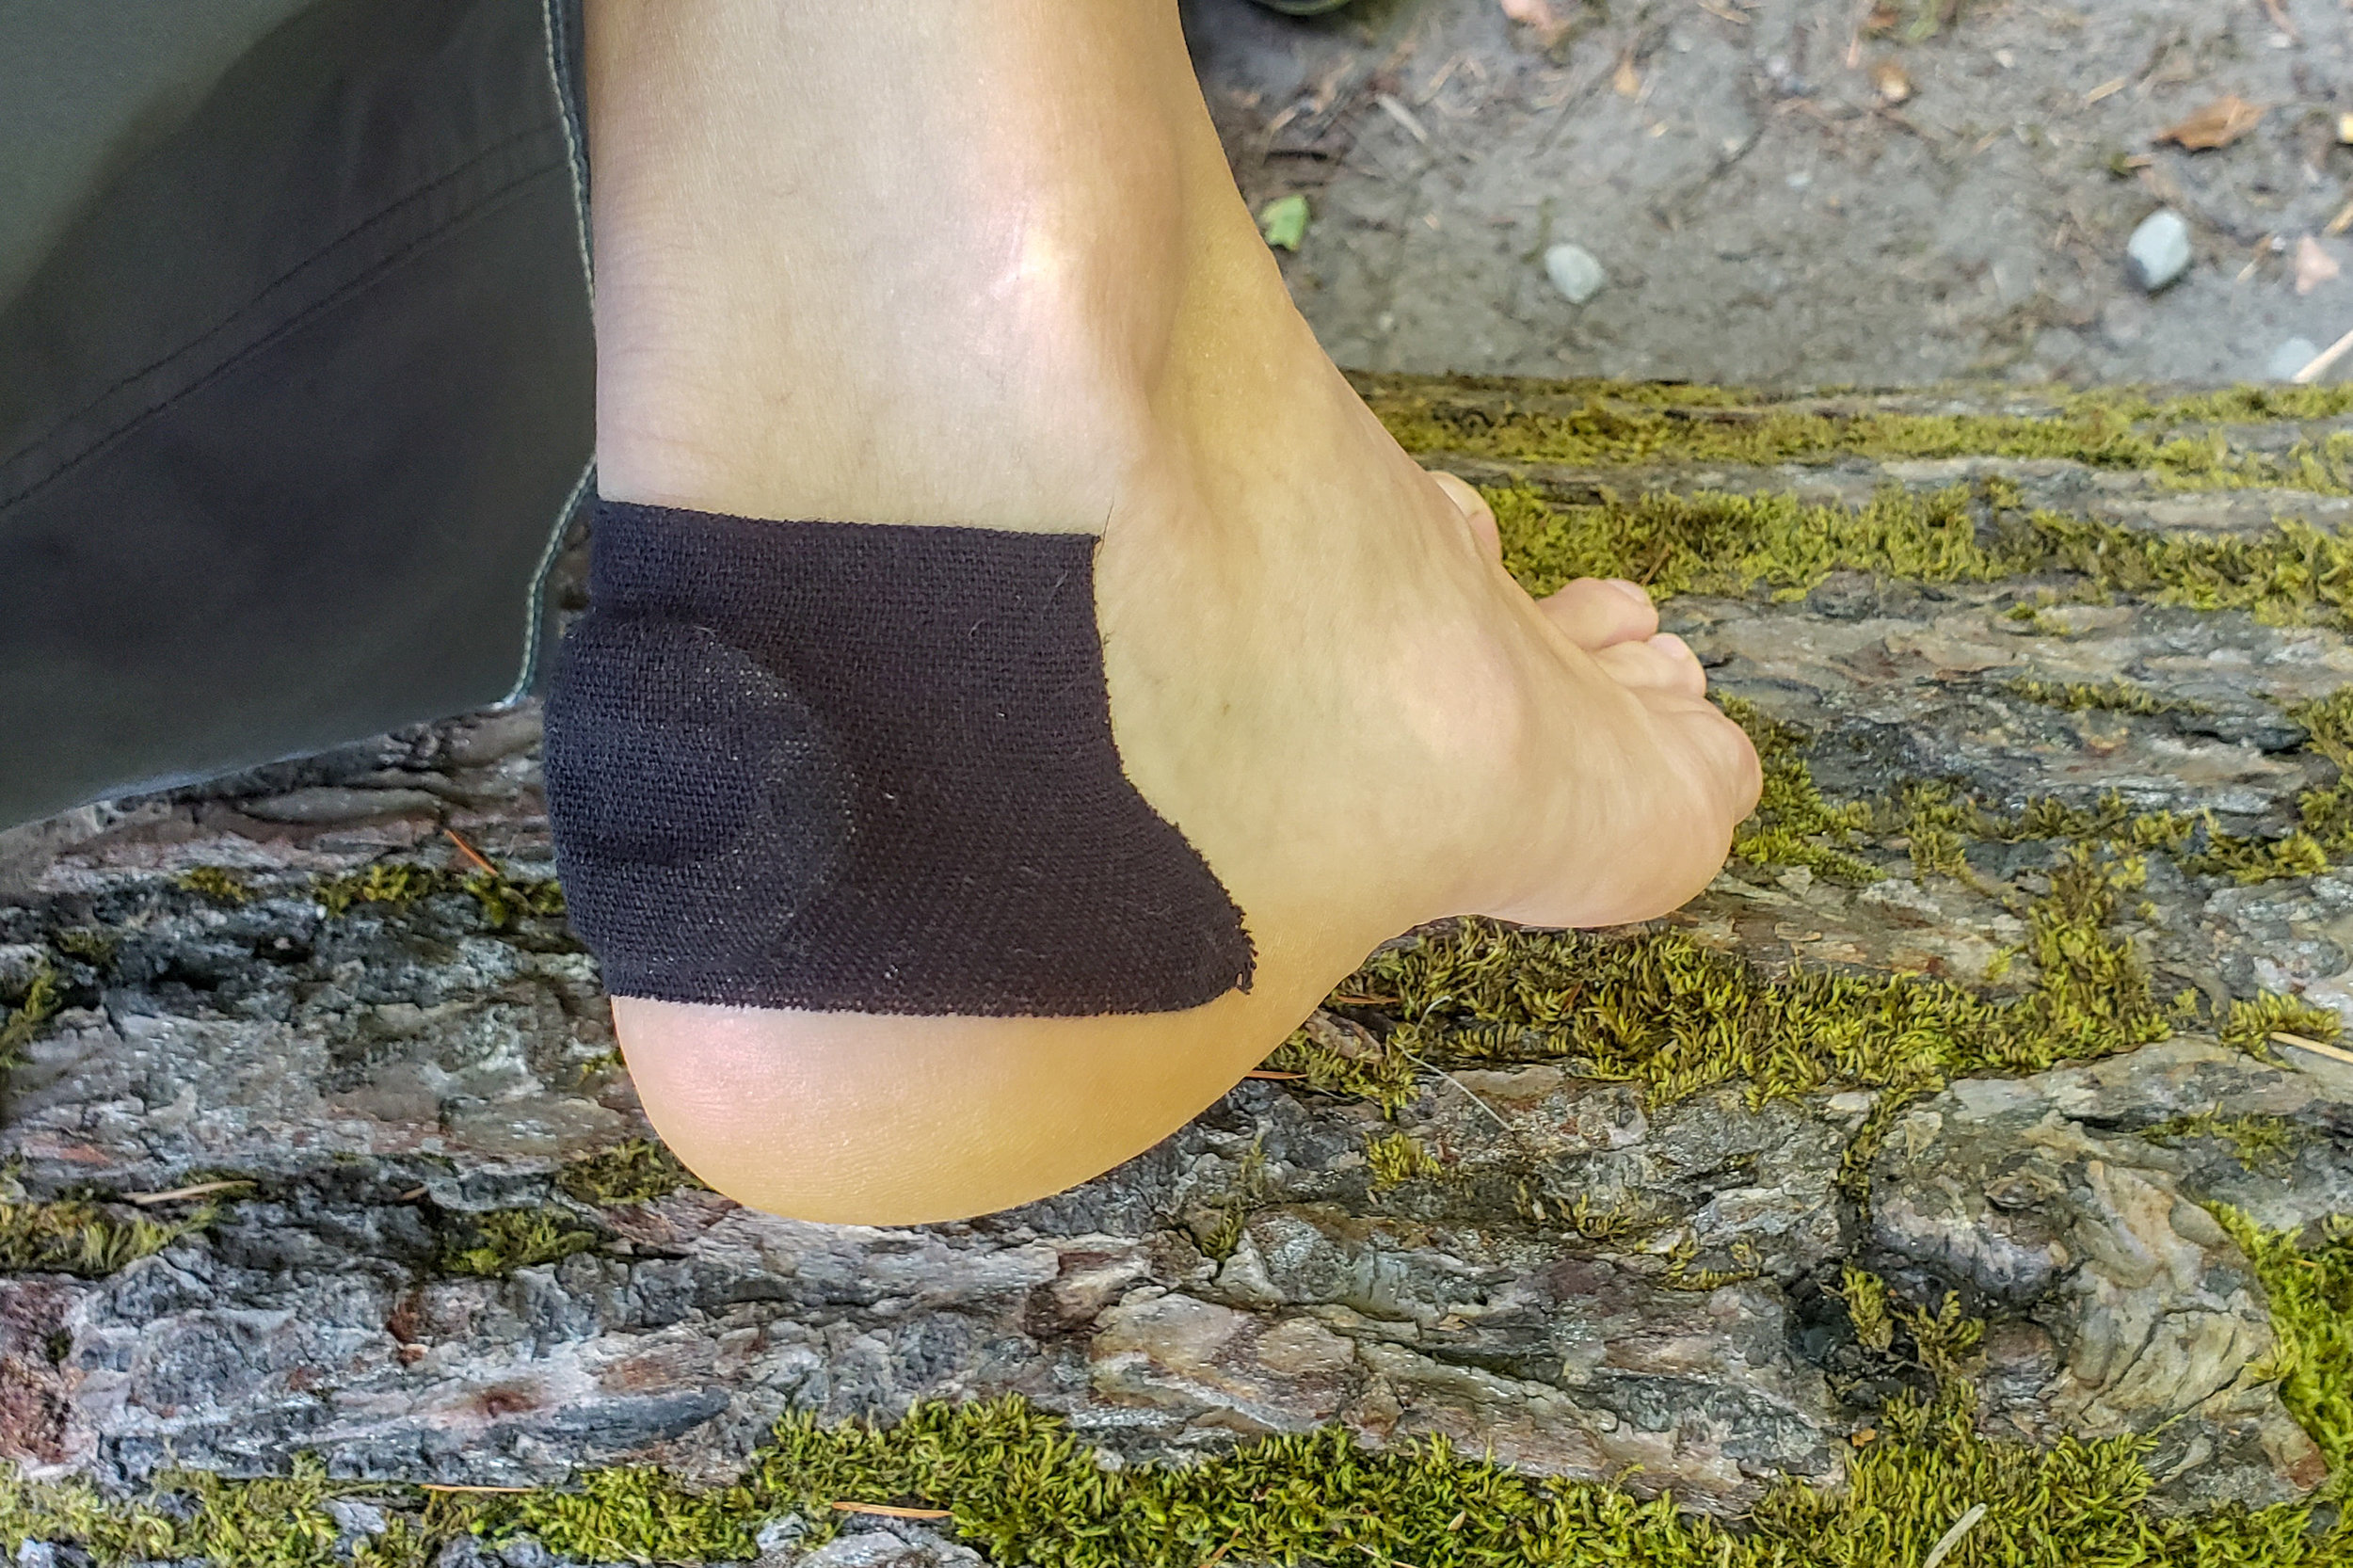 you can use moleskin and kt tape to treat a blister on trail.